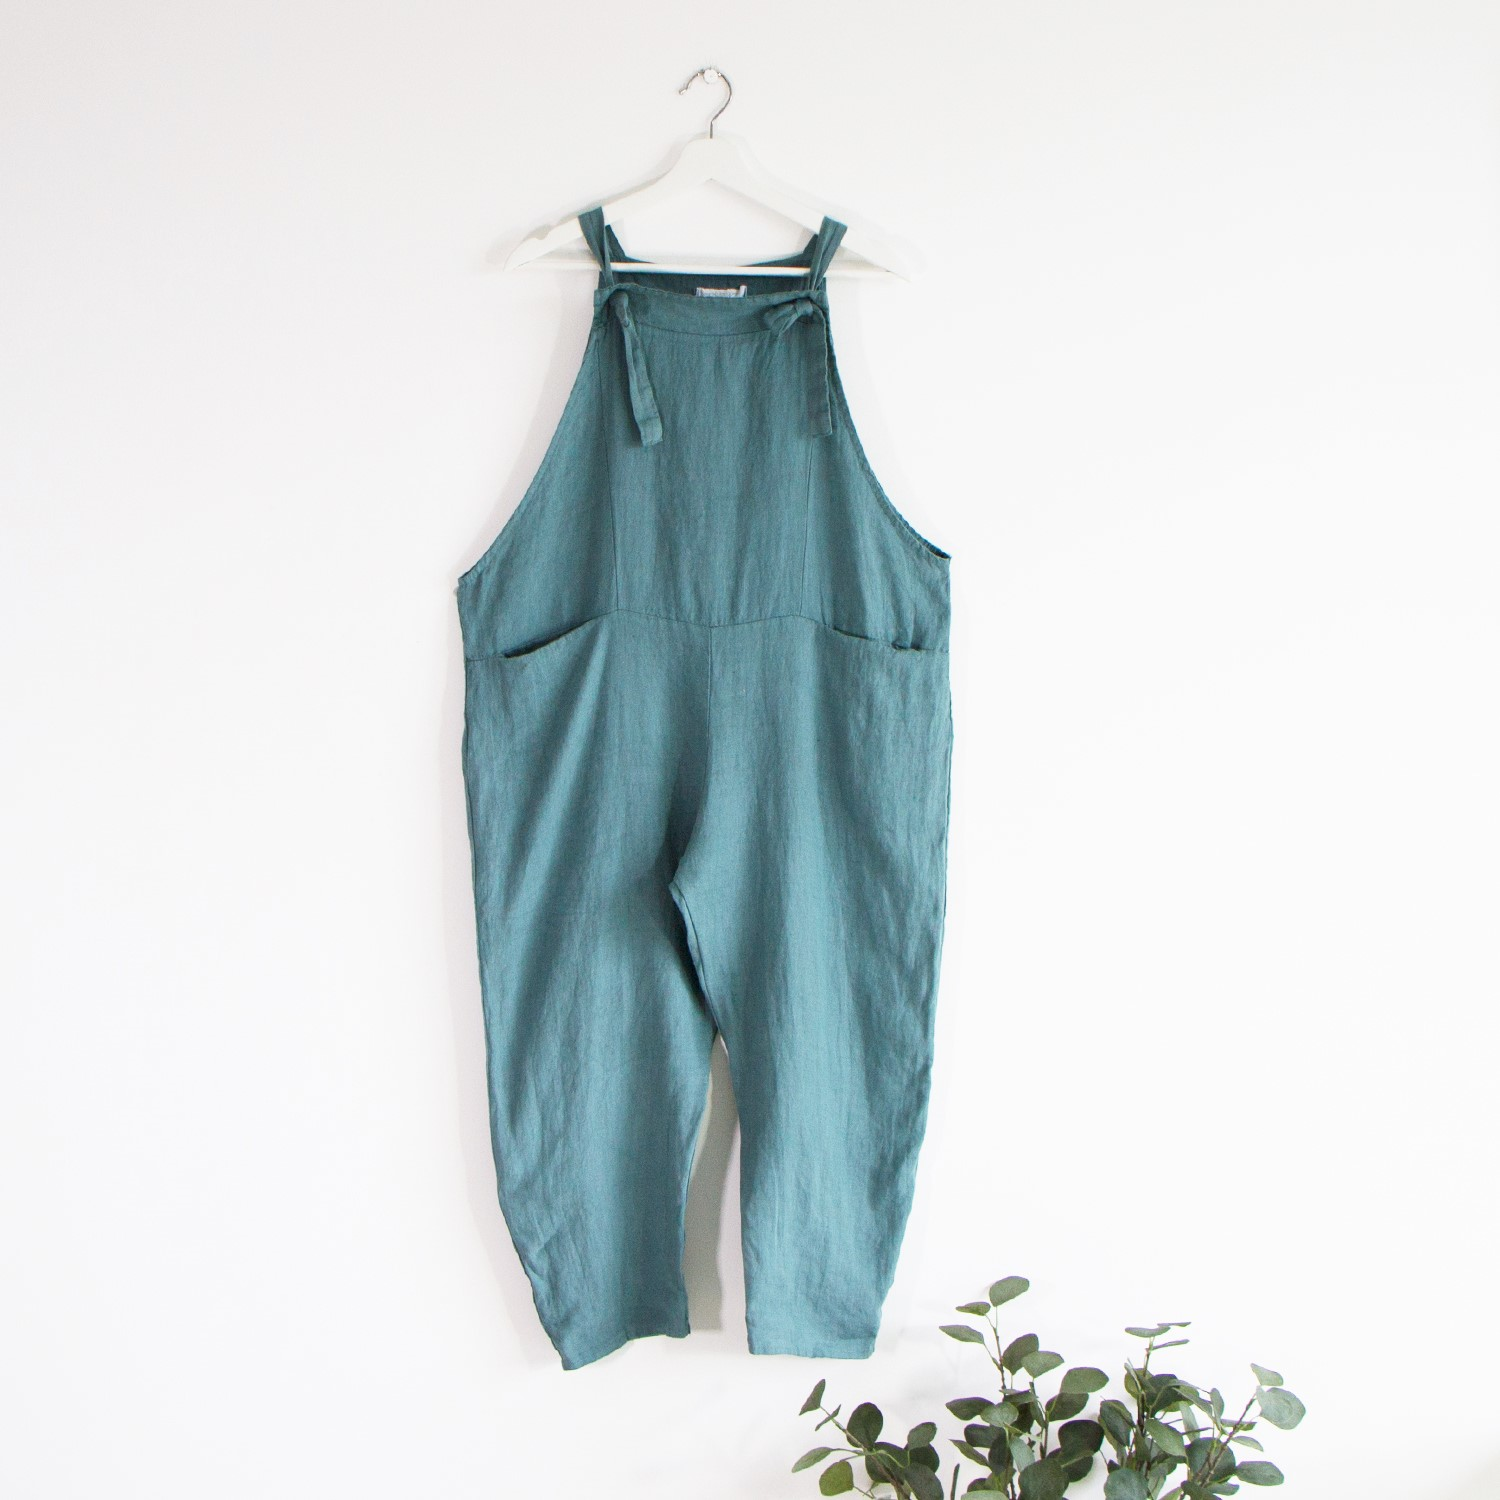 Linen dungarees with tie detail and pockets